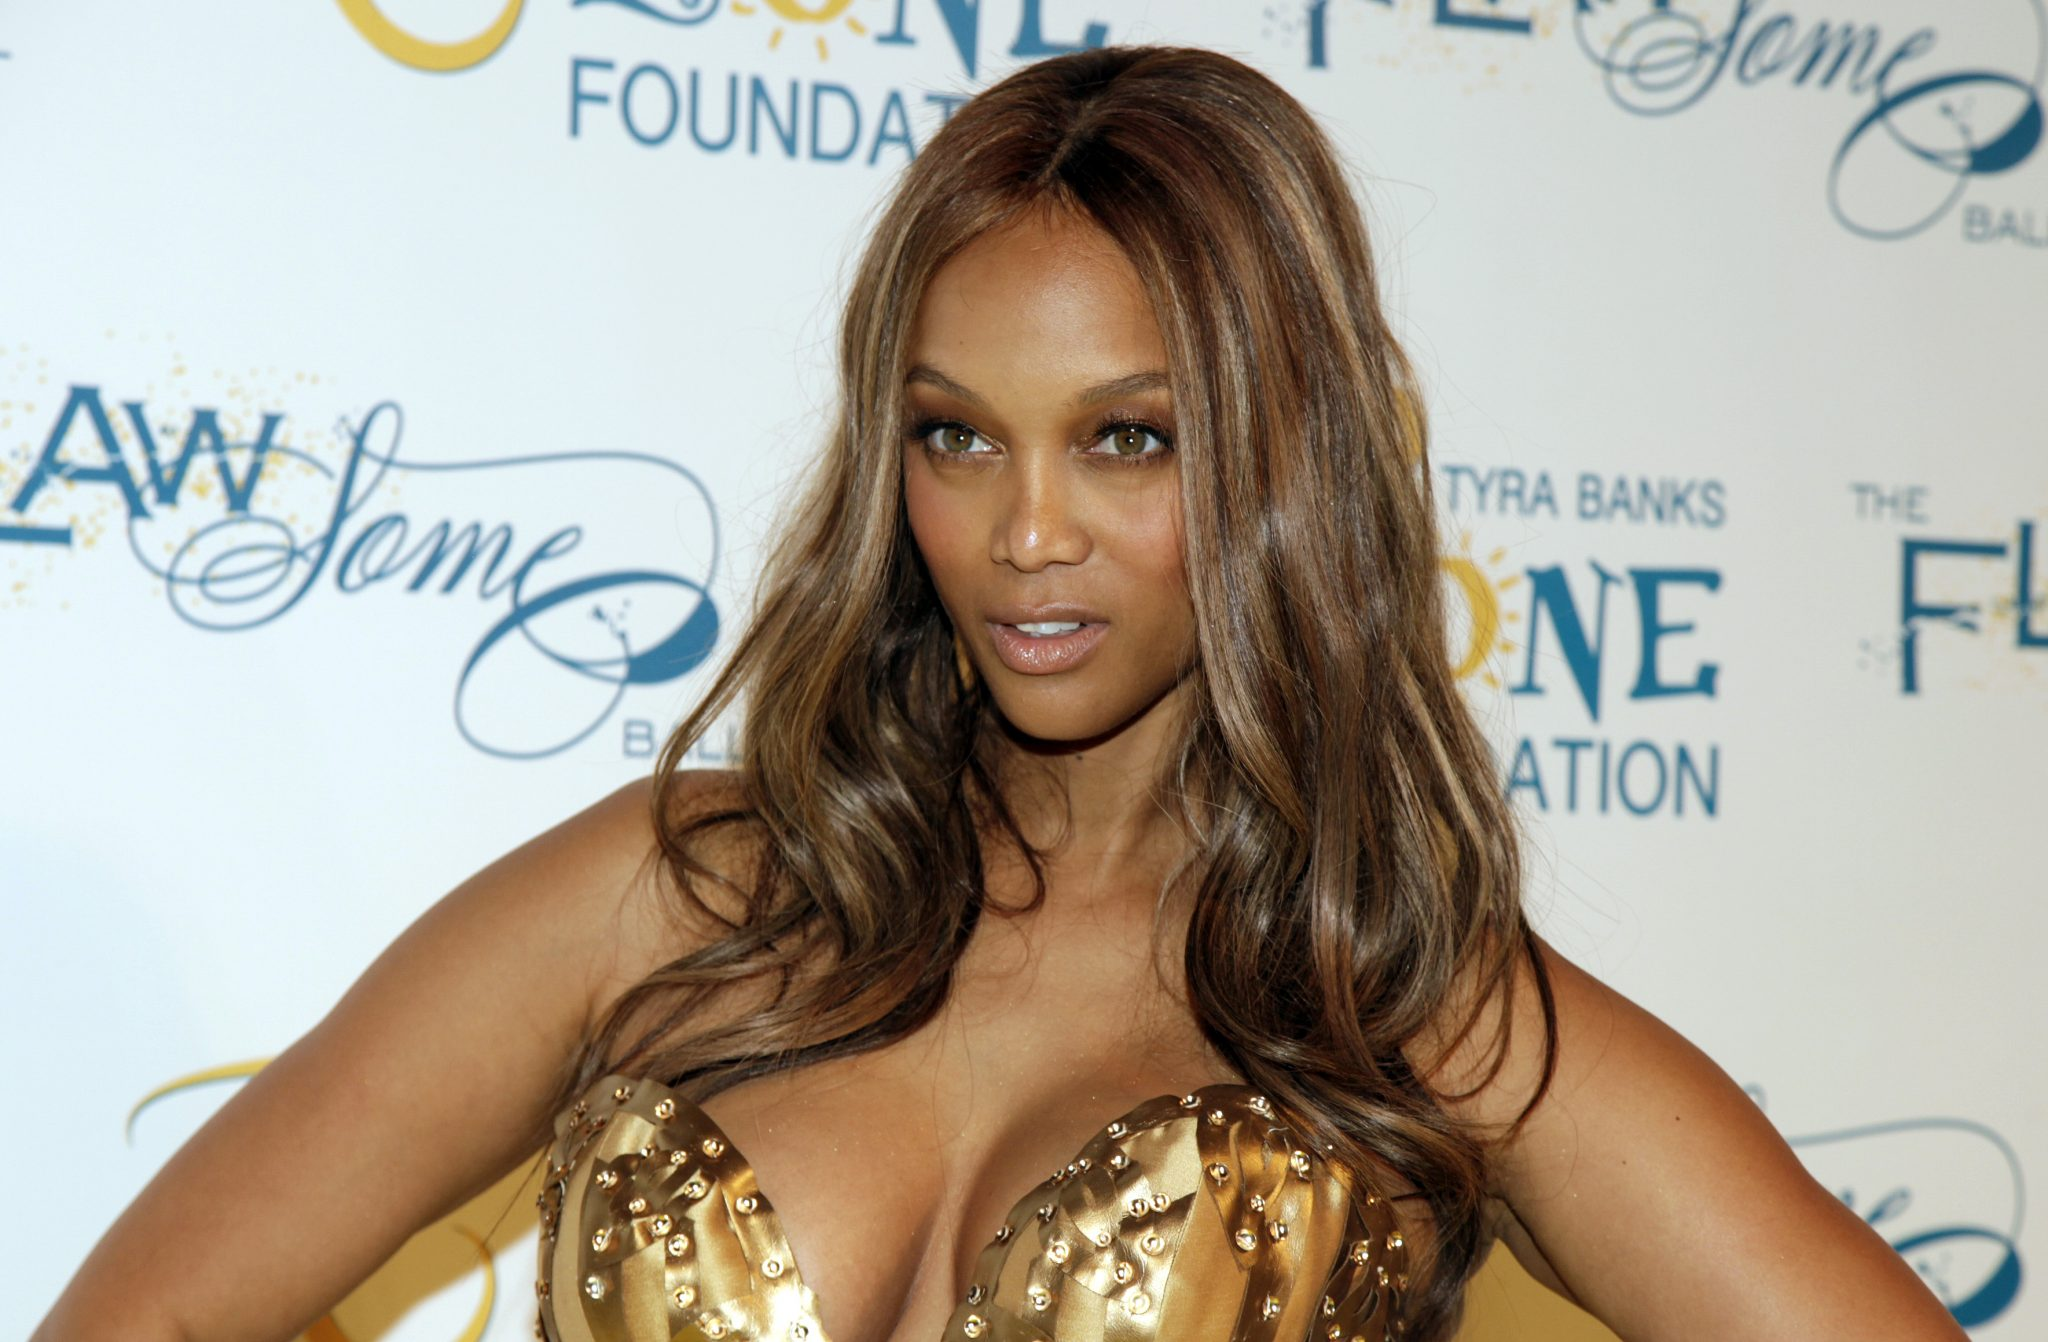 what tyra banks will teach son about women defendernetwork com